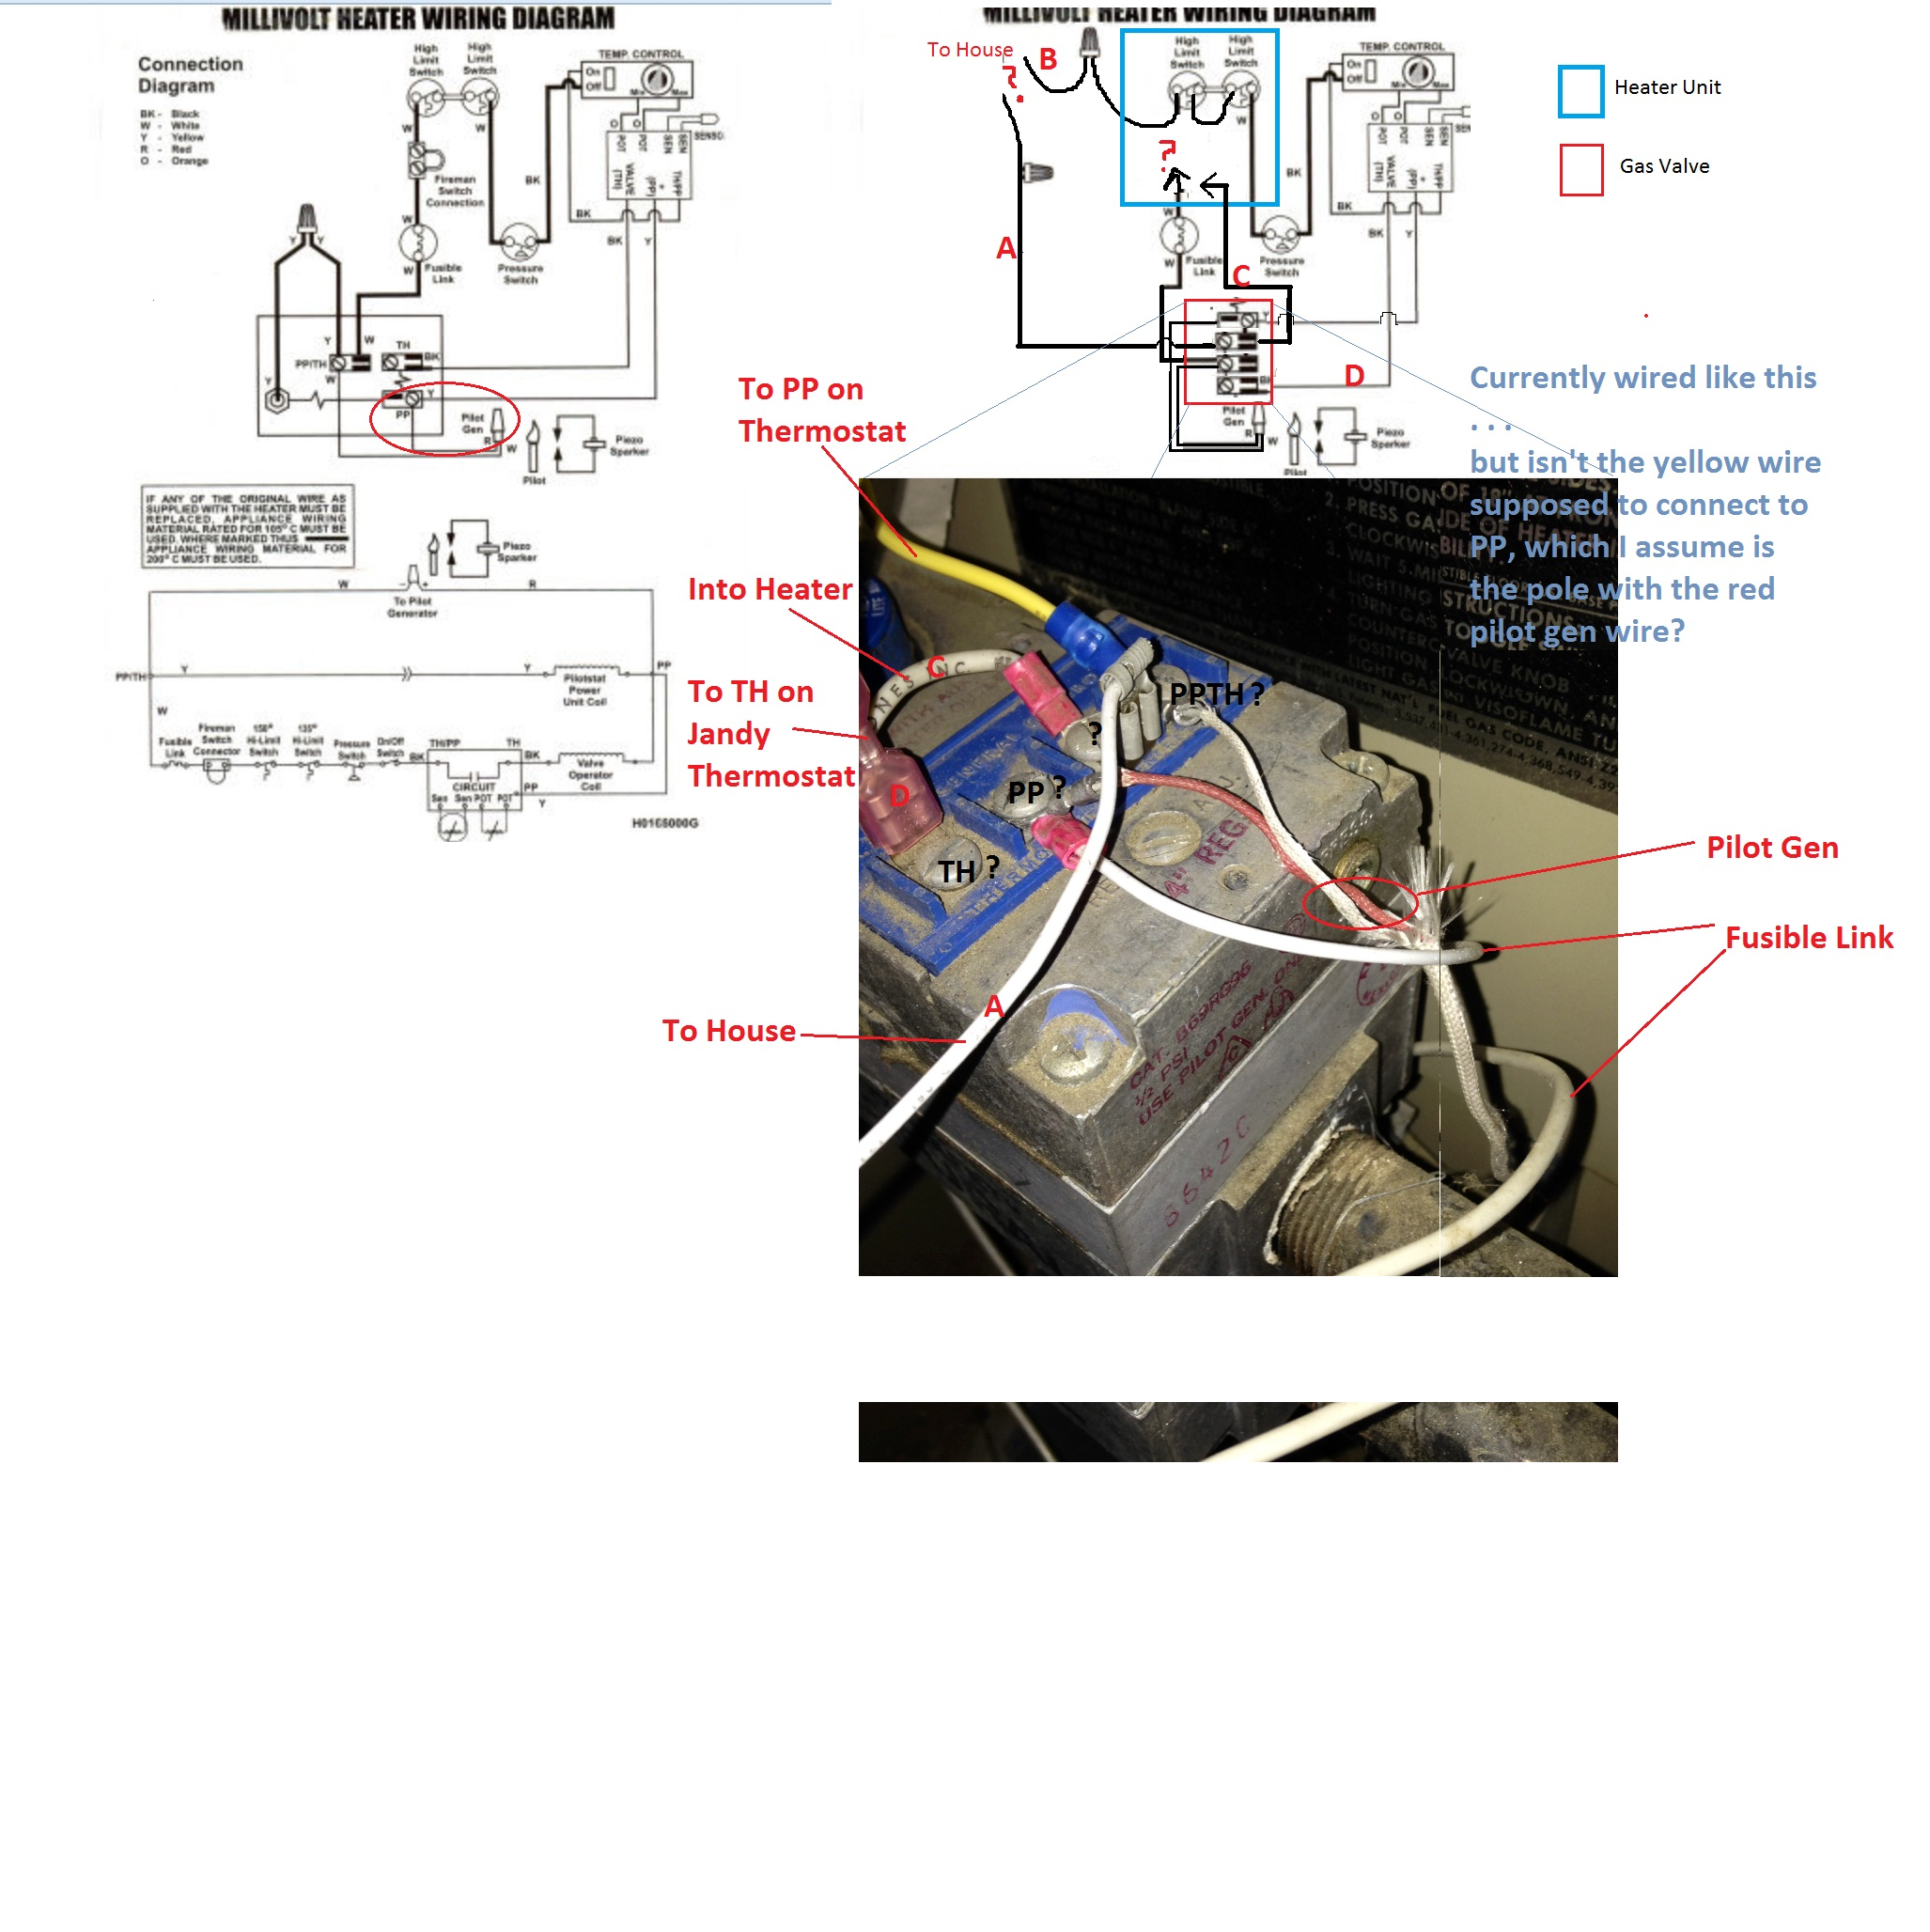 I have a problem with my EPG-125 Series One Heater. The unit ... Jandy Lrz Millivolt Wiring Diagram on